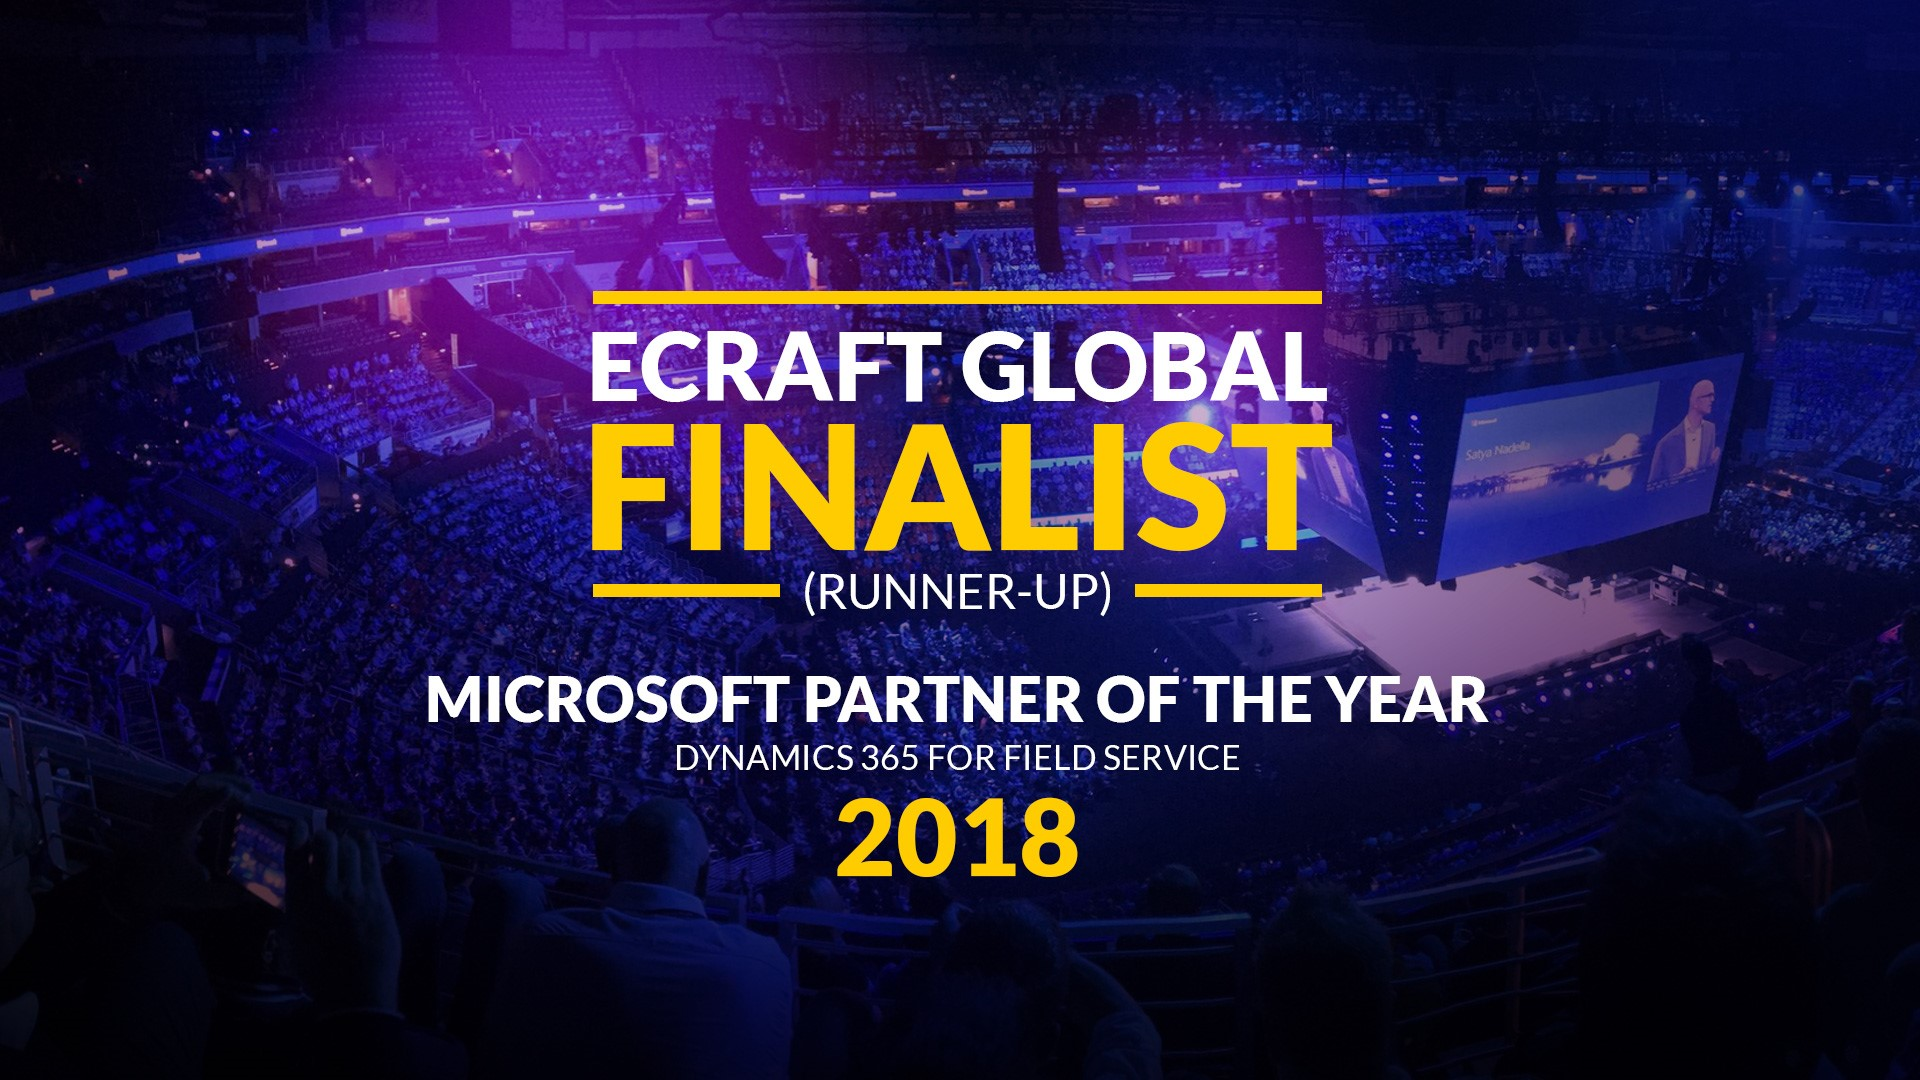 ecraft-microsoft-Partner of the Year 2018.jpg